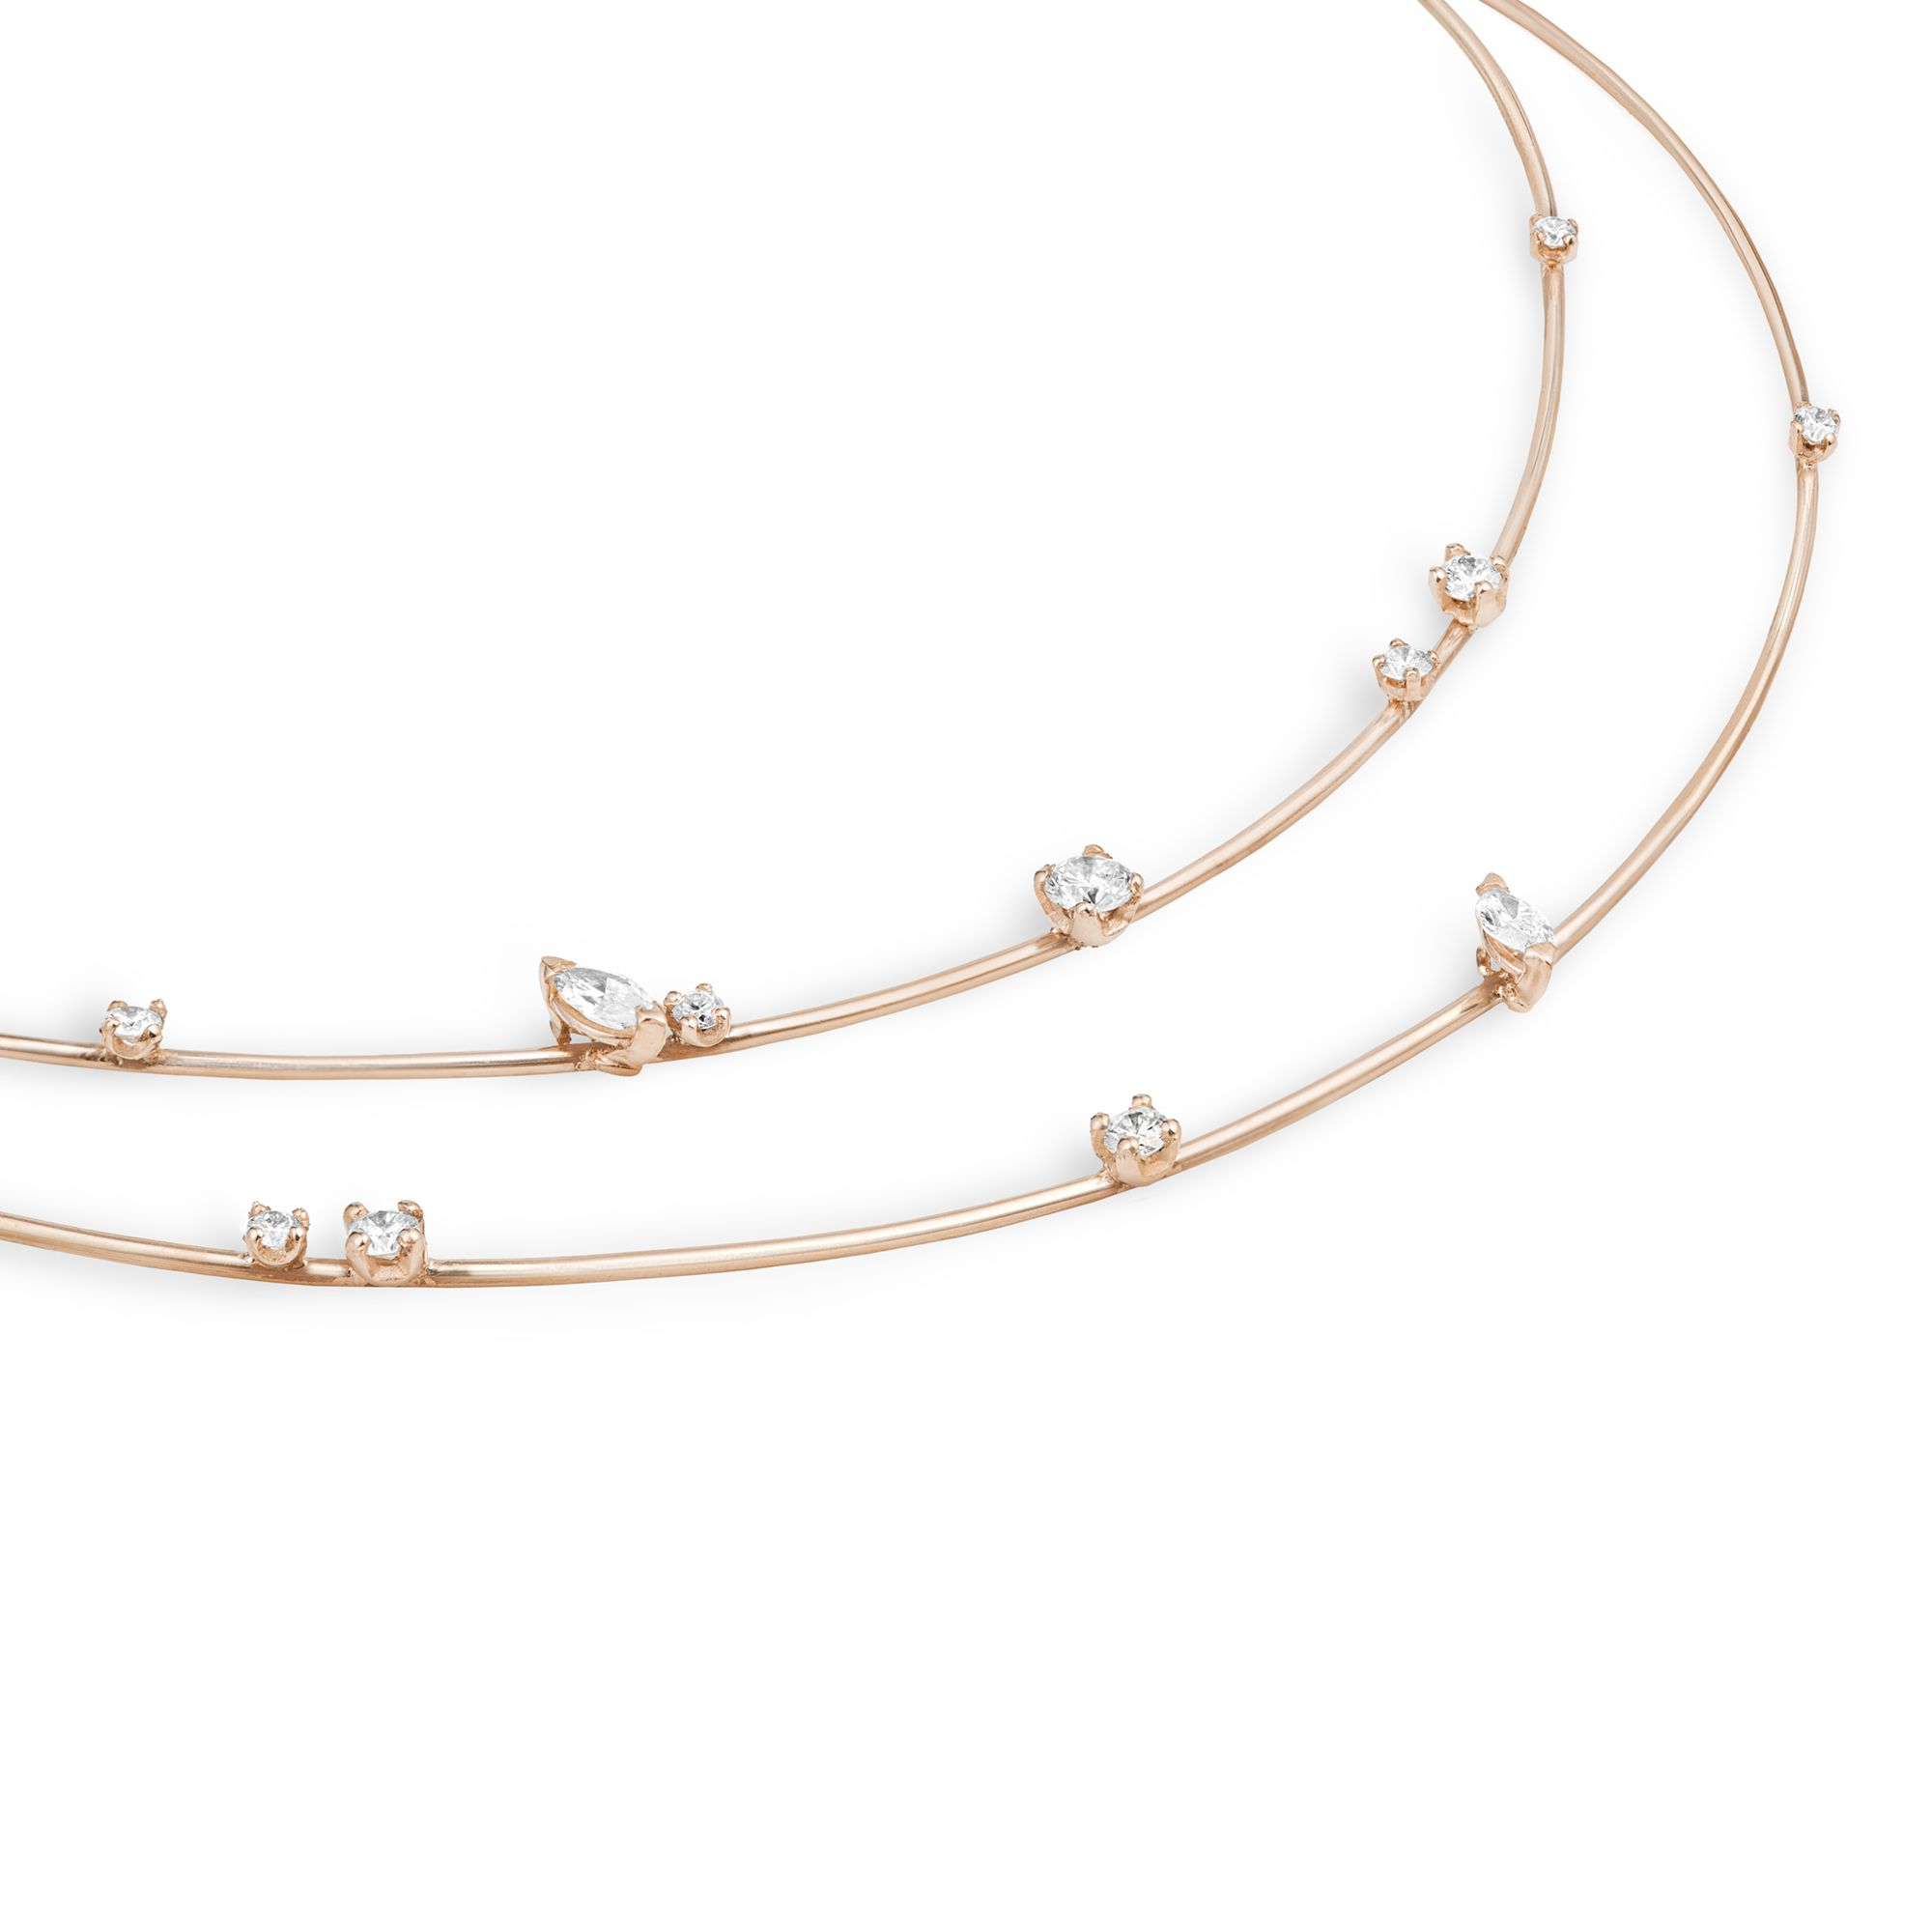 2 element 'Balance' chocker Rose gold necklace with diamonds